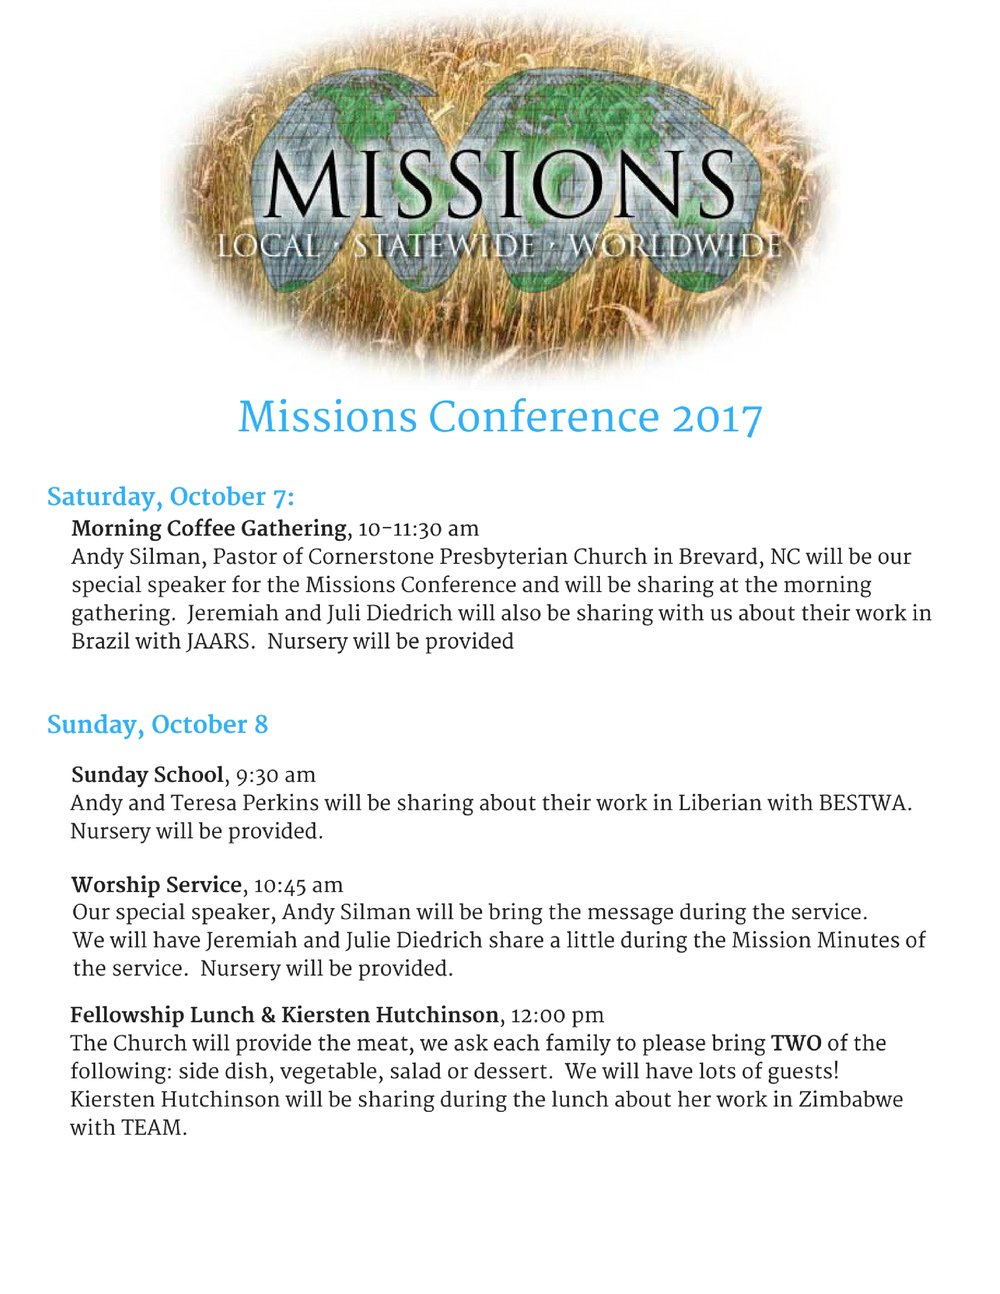 Missions Conference 2017 JPG-1.jpg